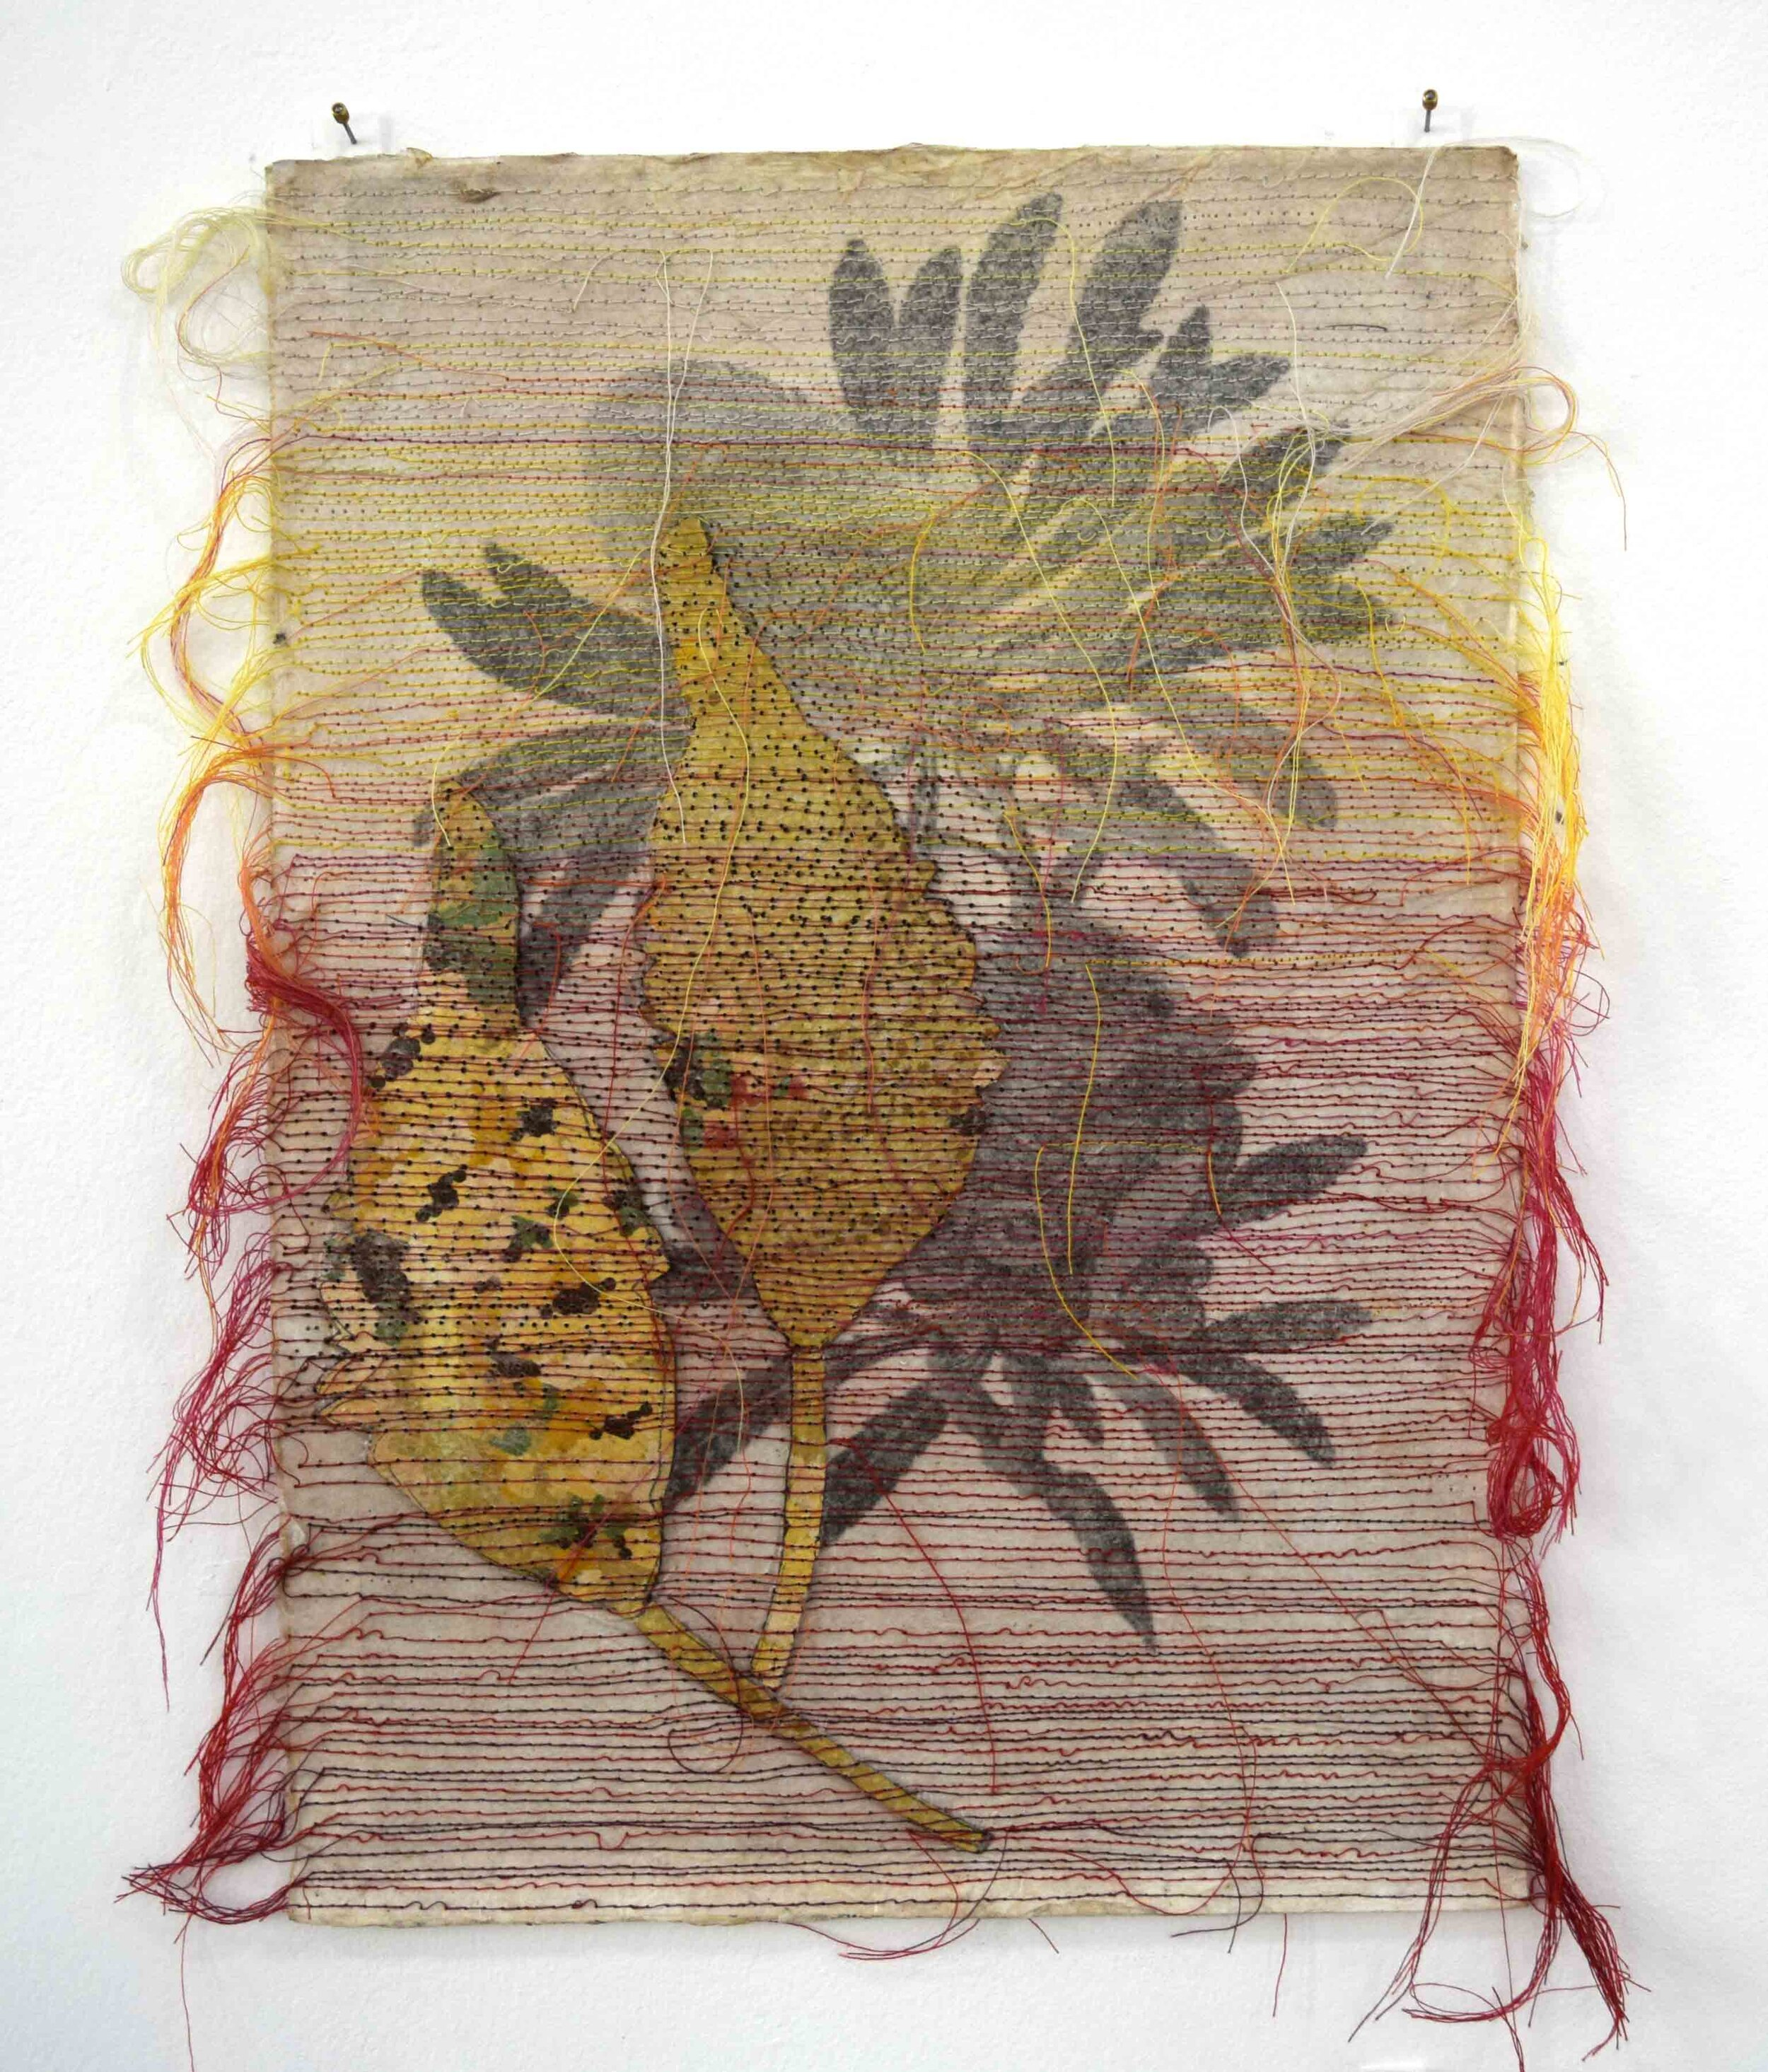 52. Helen Seiver, Introducing the Wild West to Sydney II, 2019, lino, ink and cotton thread, 42 x 29.5 cm $400